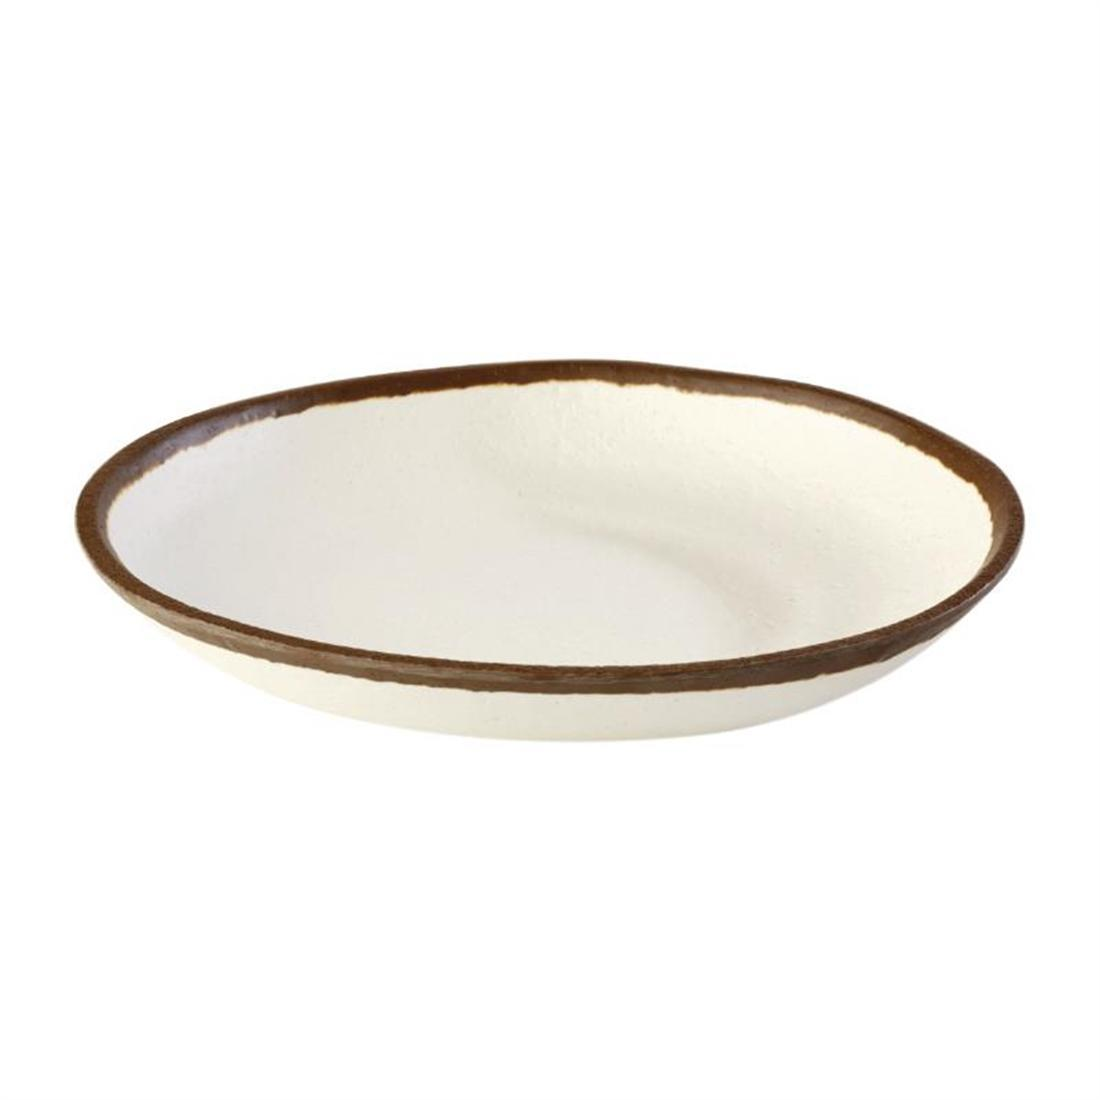 APS Crocker Plate Cream 205mm - Each - HC721